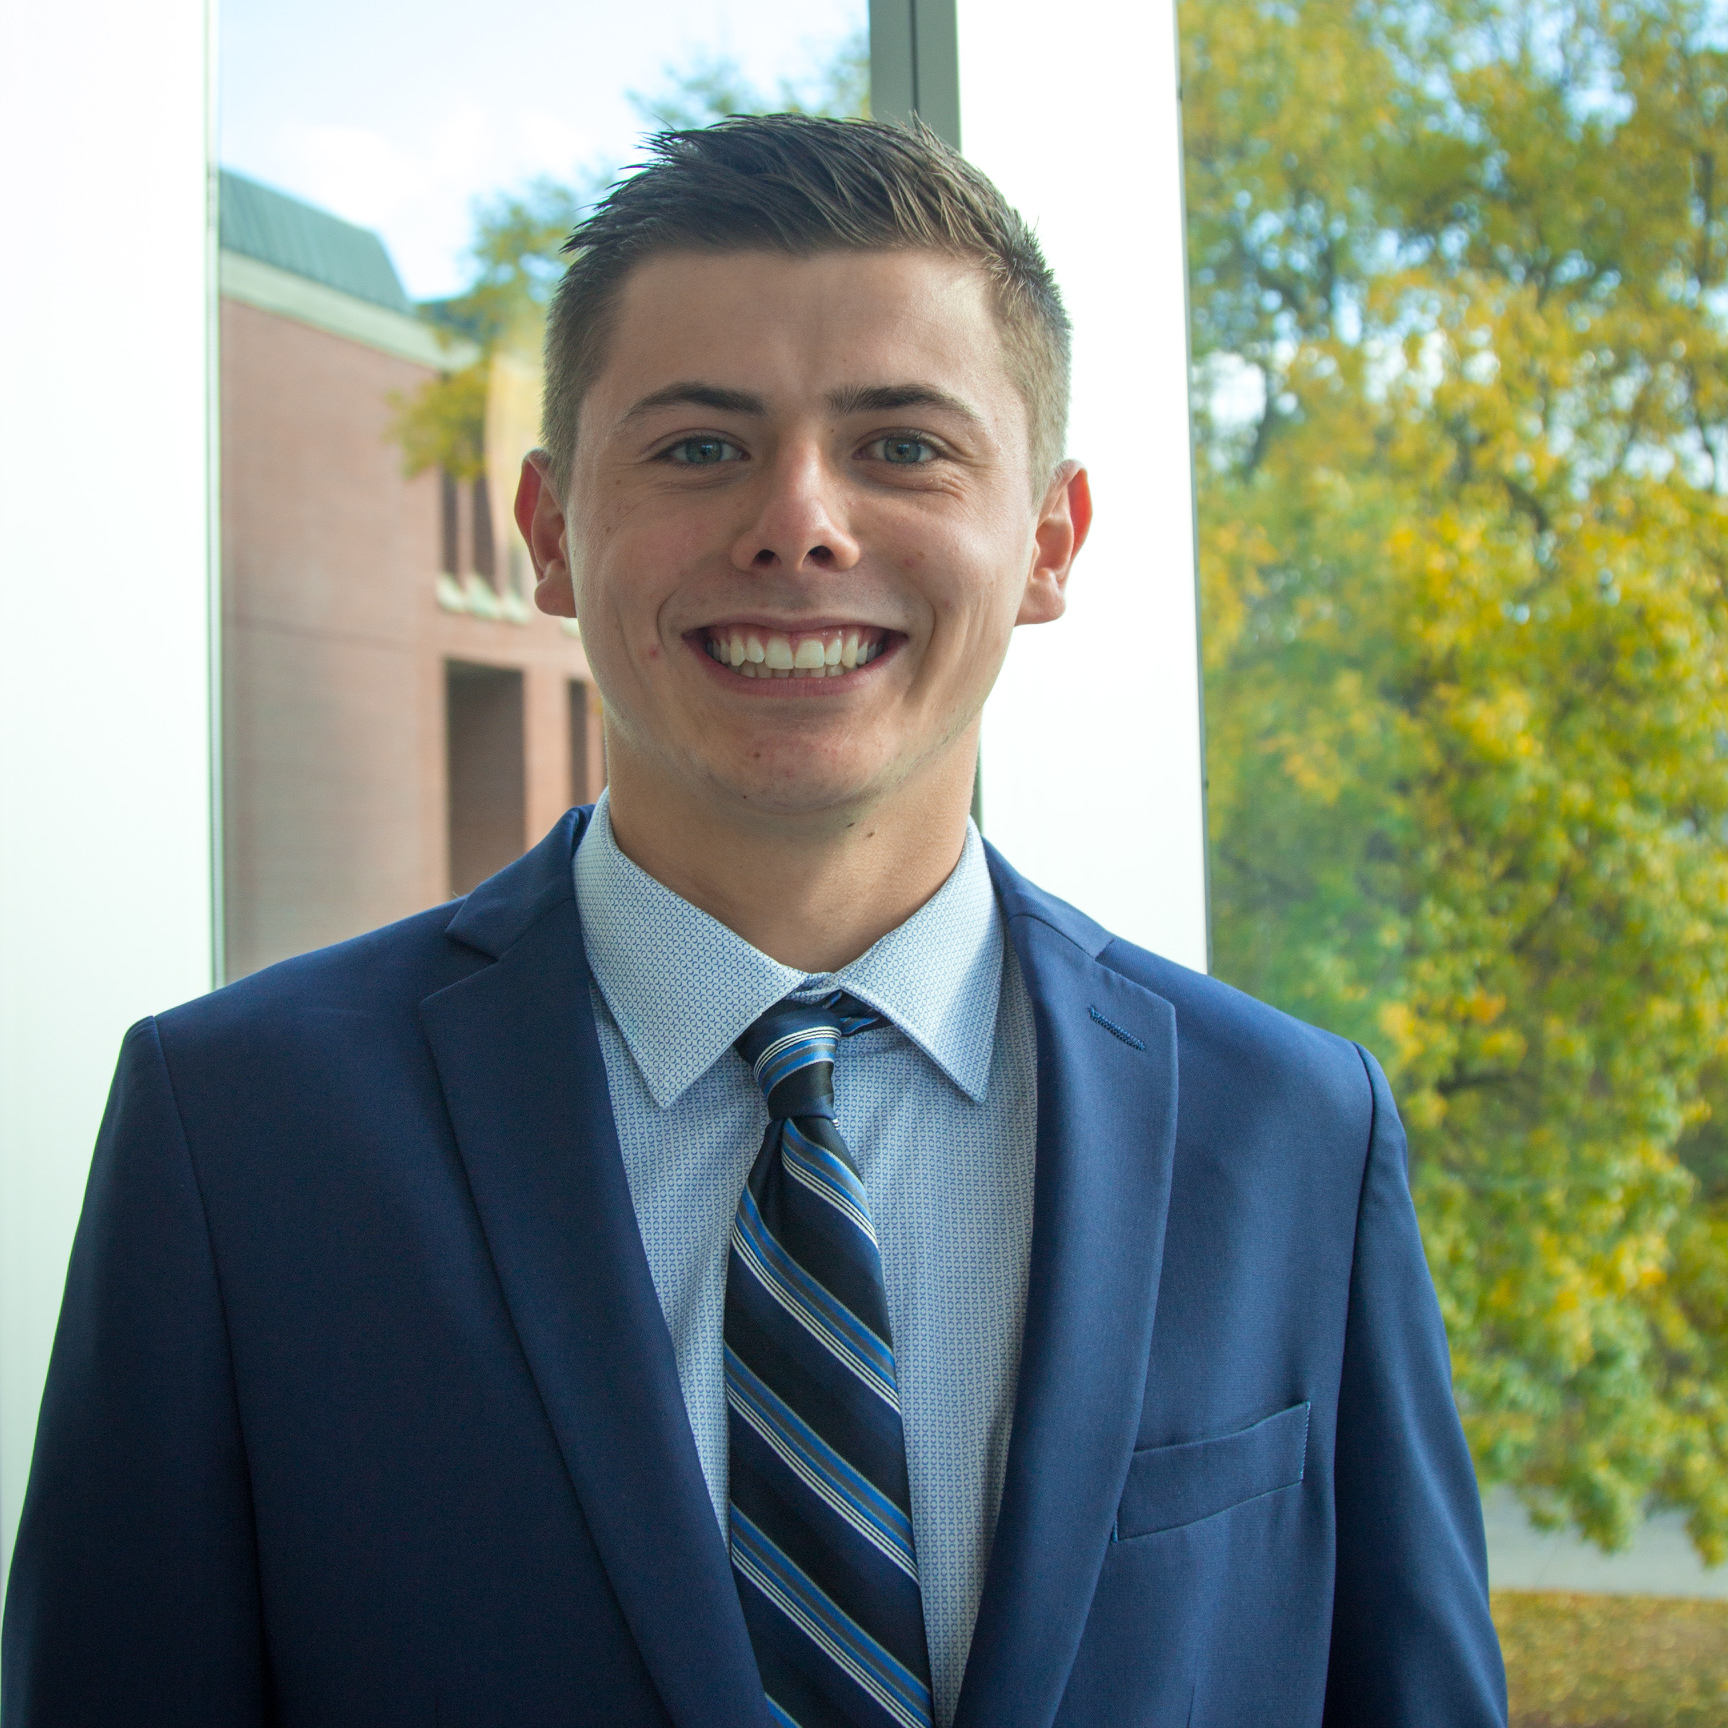 Ethan VanDeHey from University of Wisconsin-Eau Claire